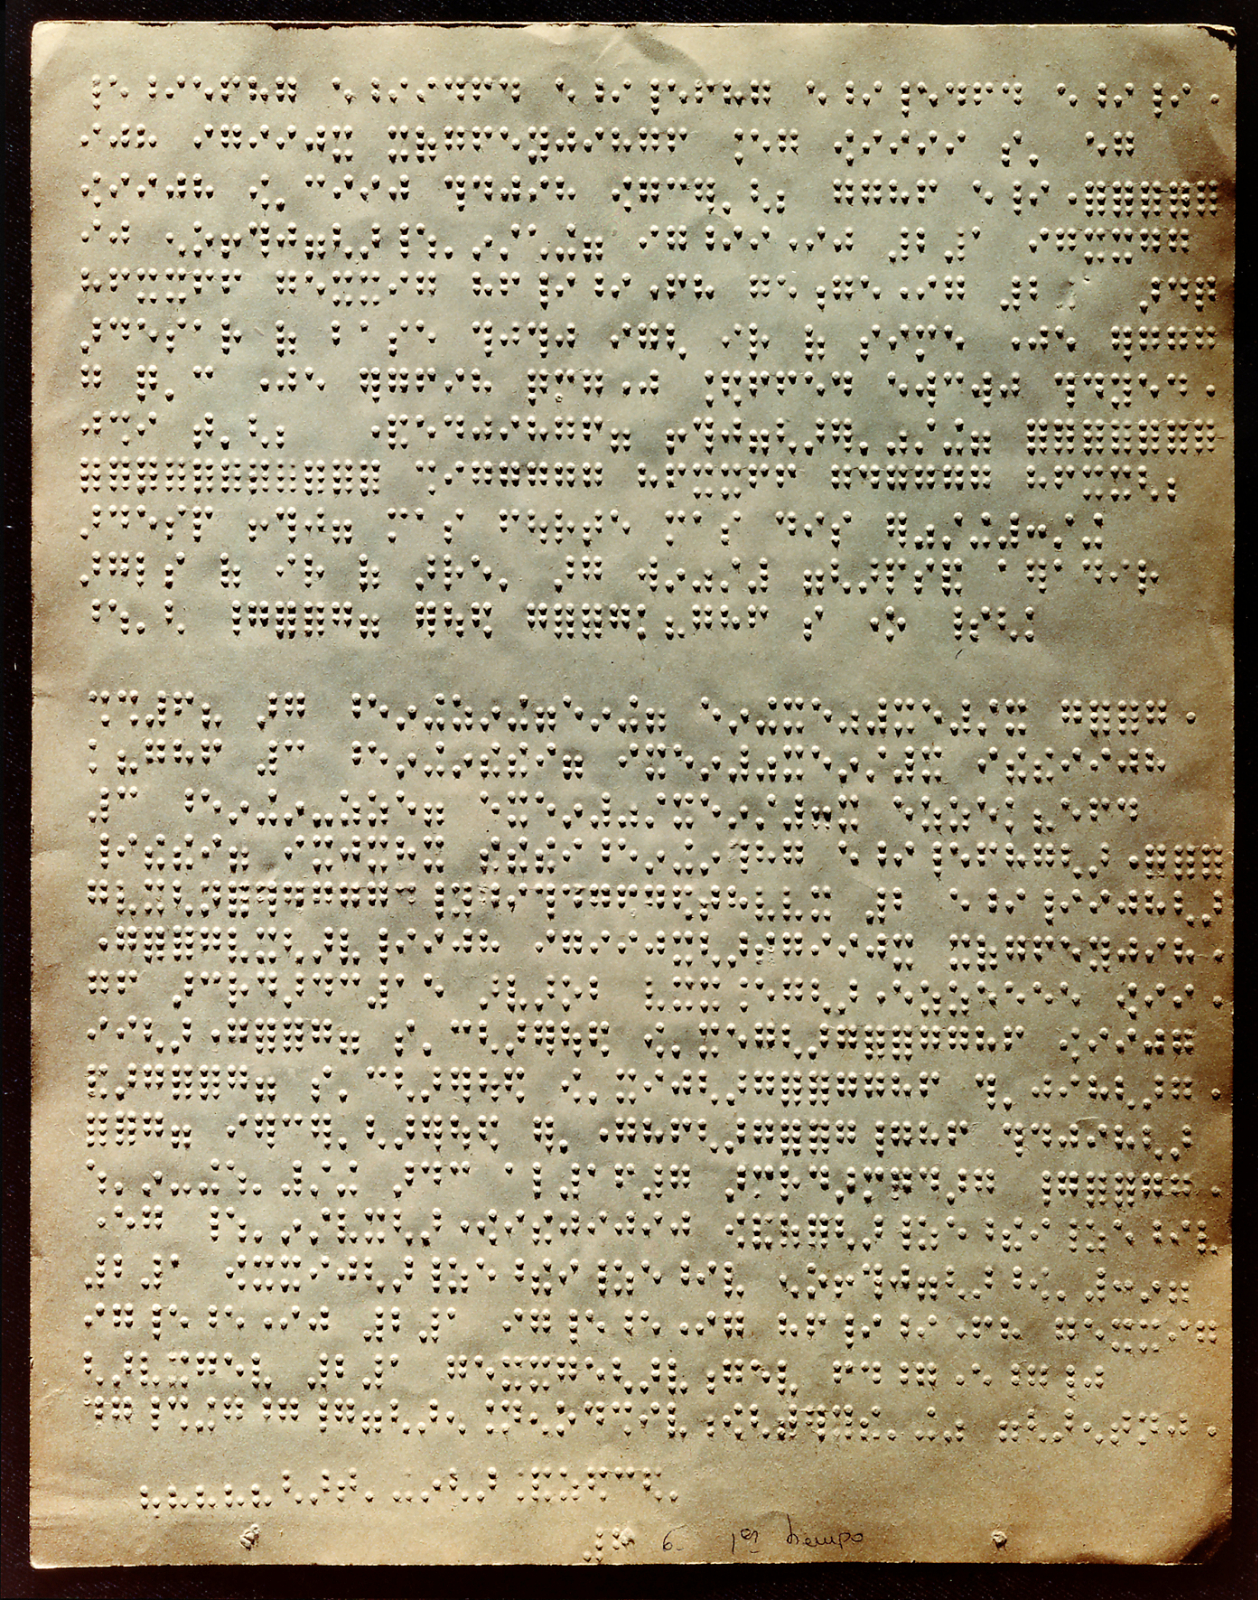 Original Braille manuscript of the Concierto de Aranjuez